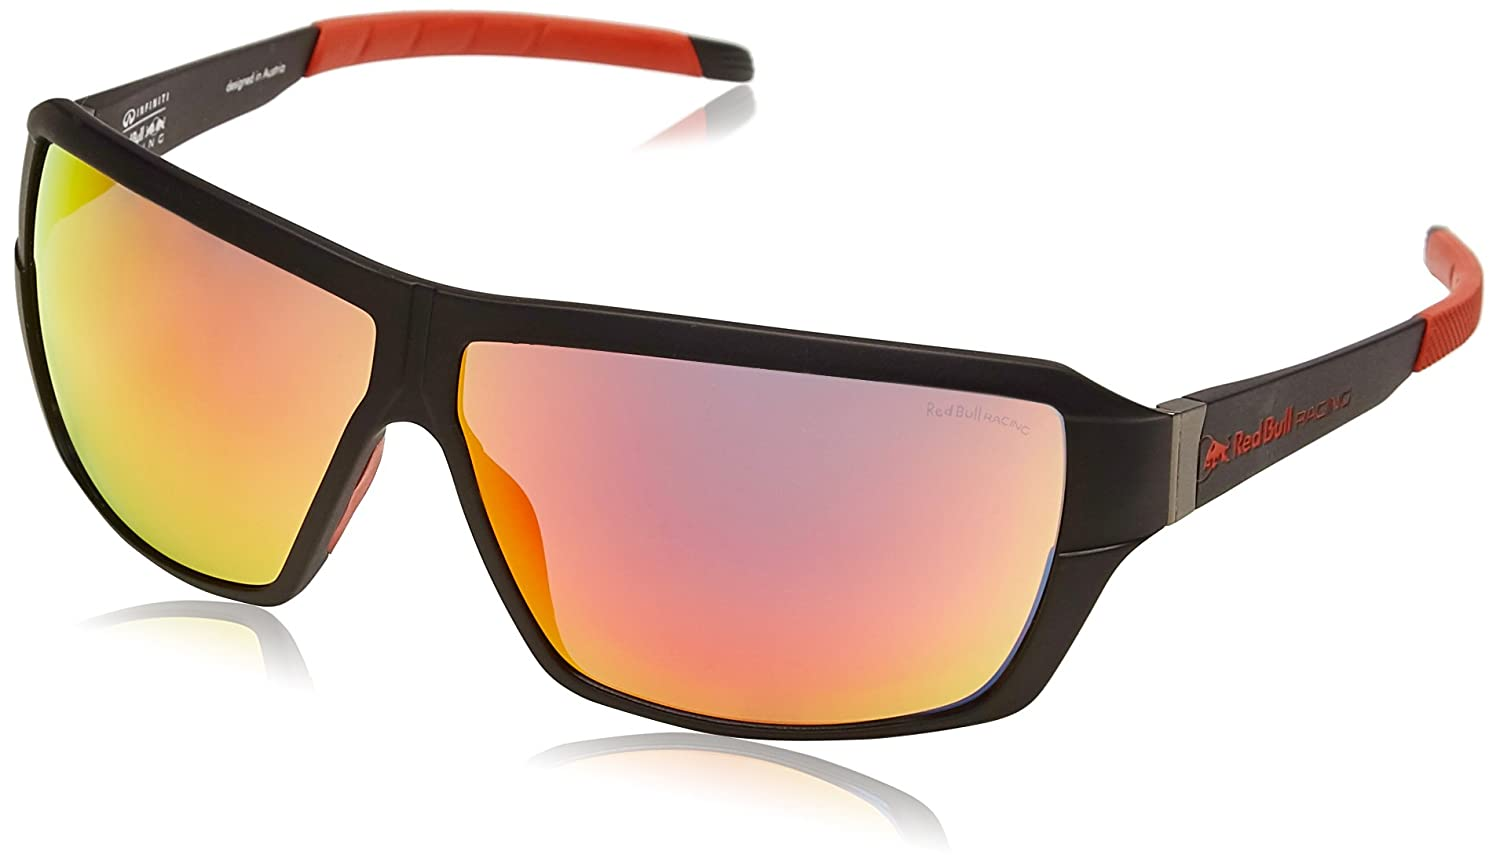 Red Bull Racing Eyewear - Gafas de sol Rectangulares RBR207 ...